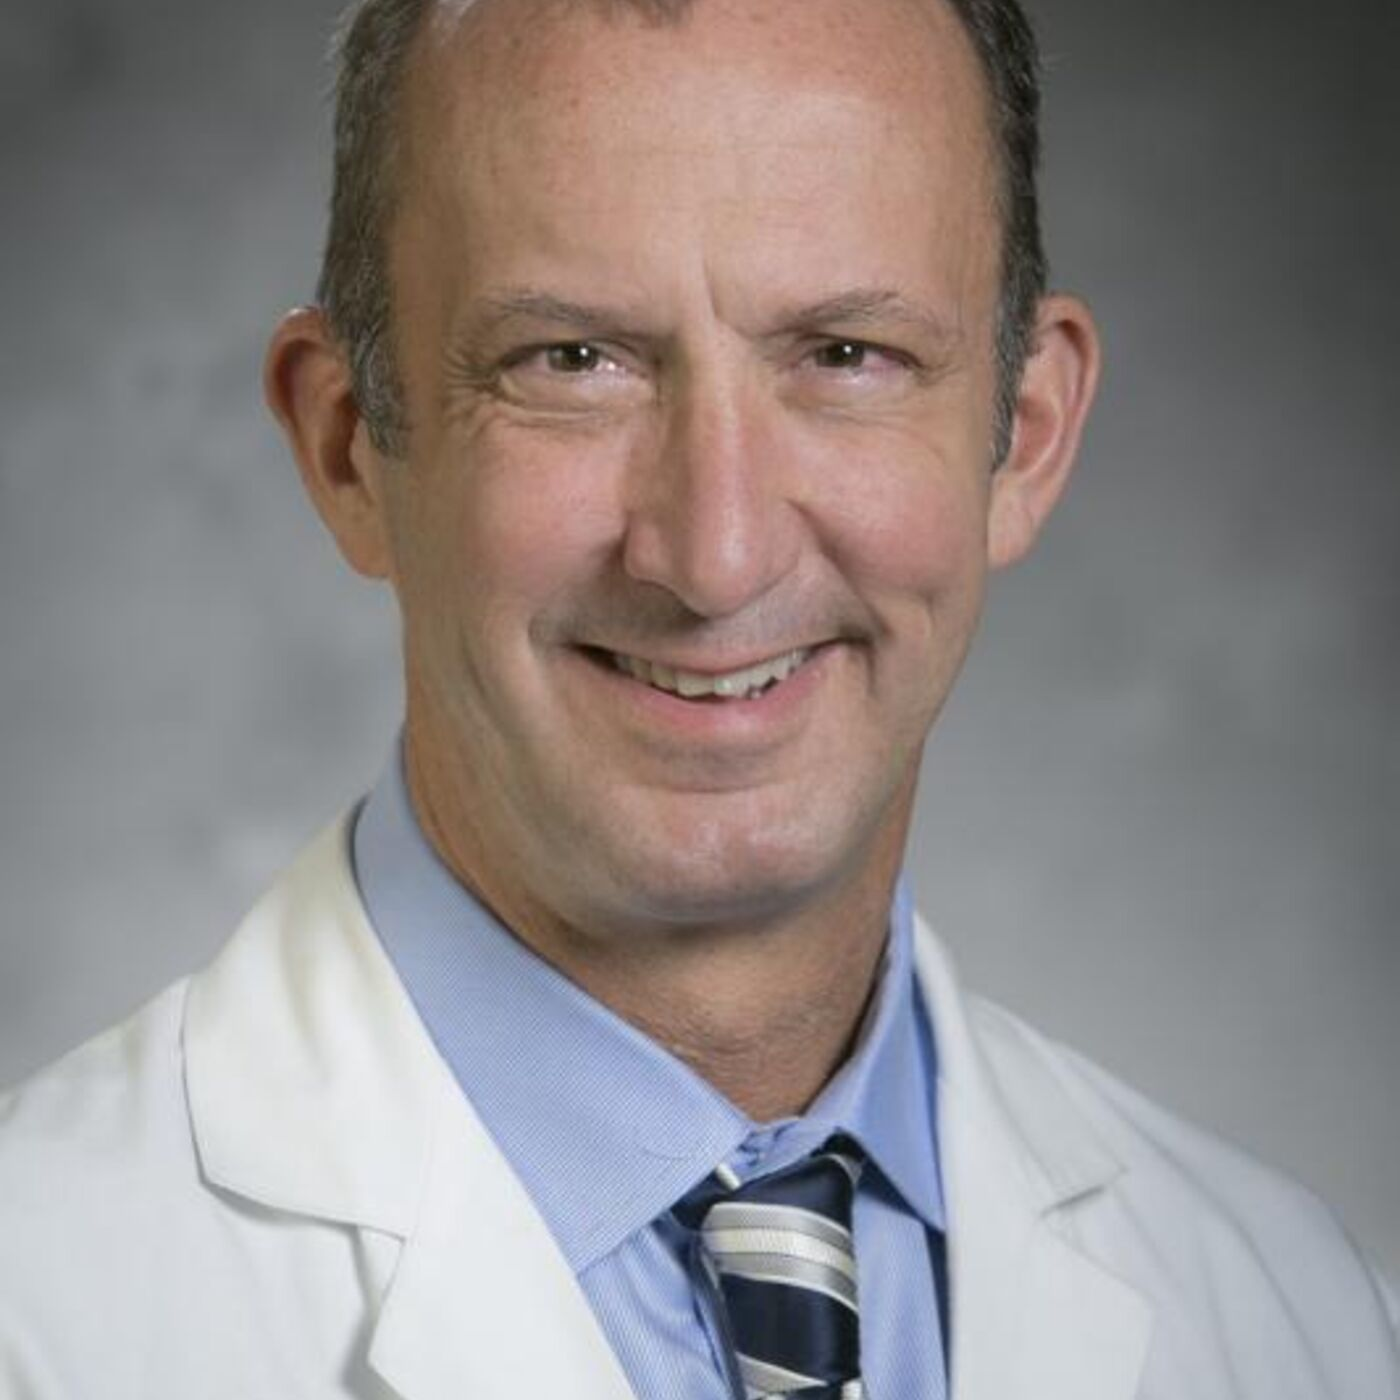 Medical Device Rep Podcast: Dr. David Ruch